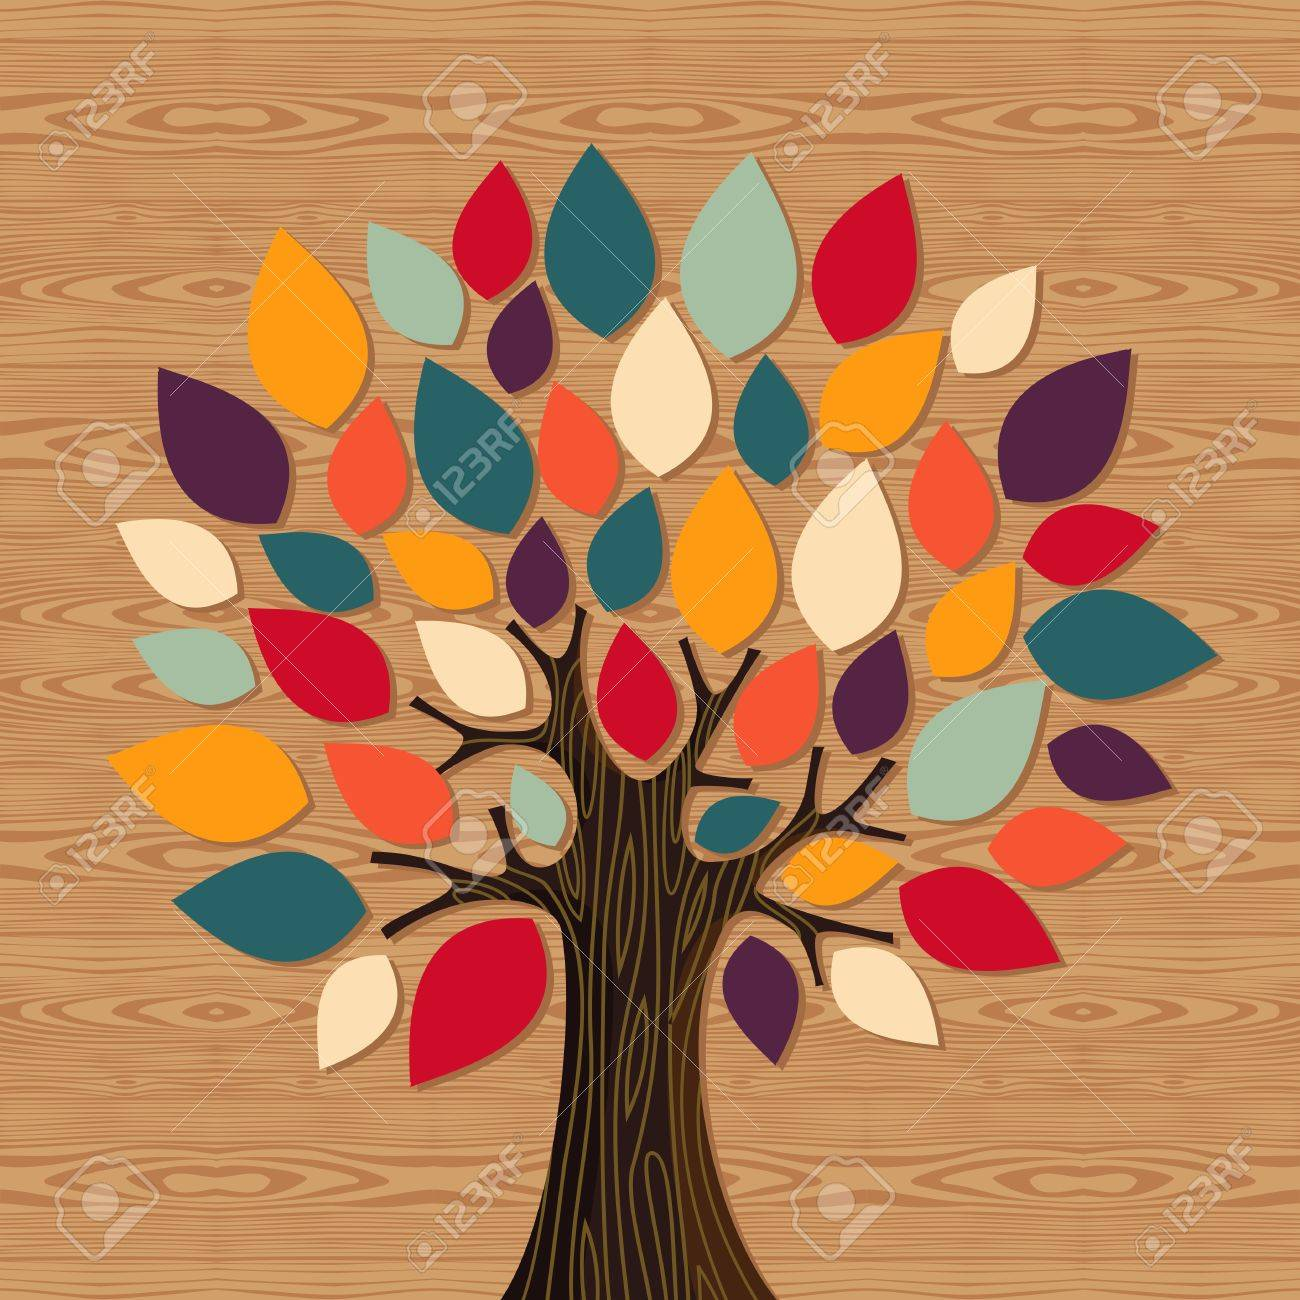 Diversity concept tree illustration. file layered for easy manipulation and custom coloring. - 16105380